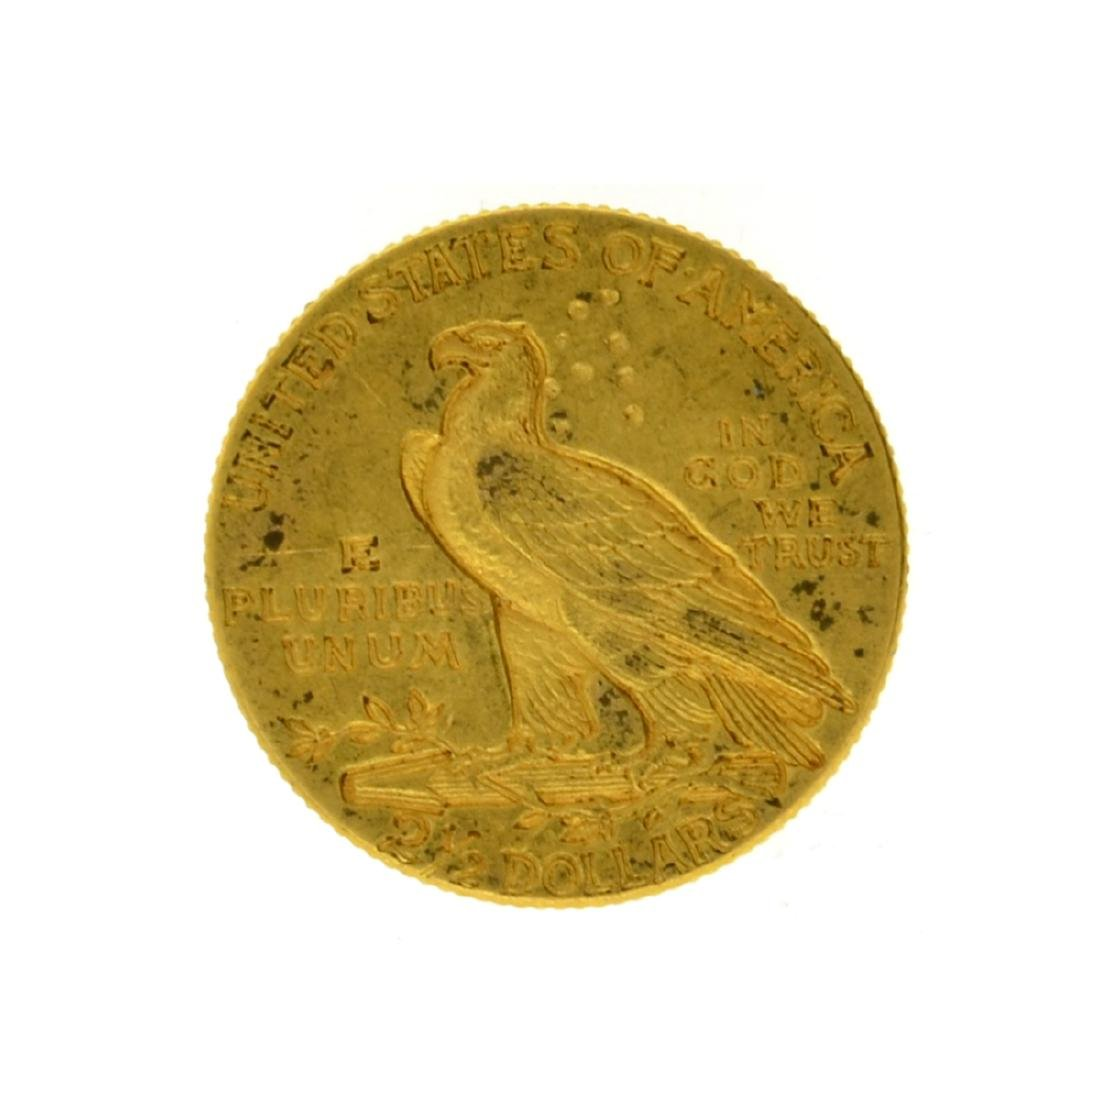 1913 $2.50 Indian Head Gold Coin - 2